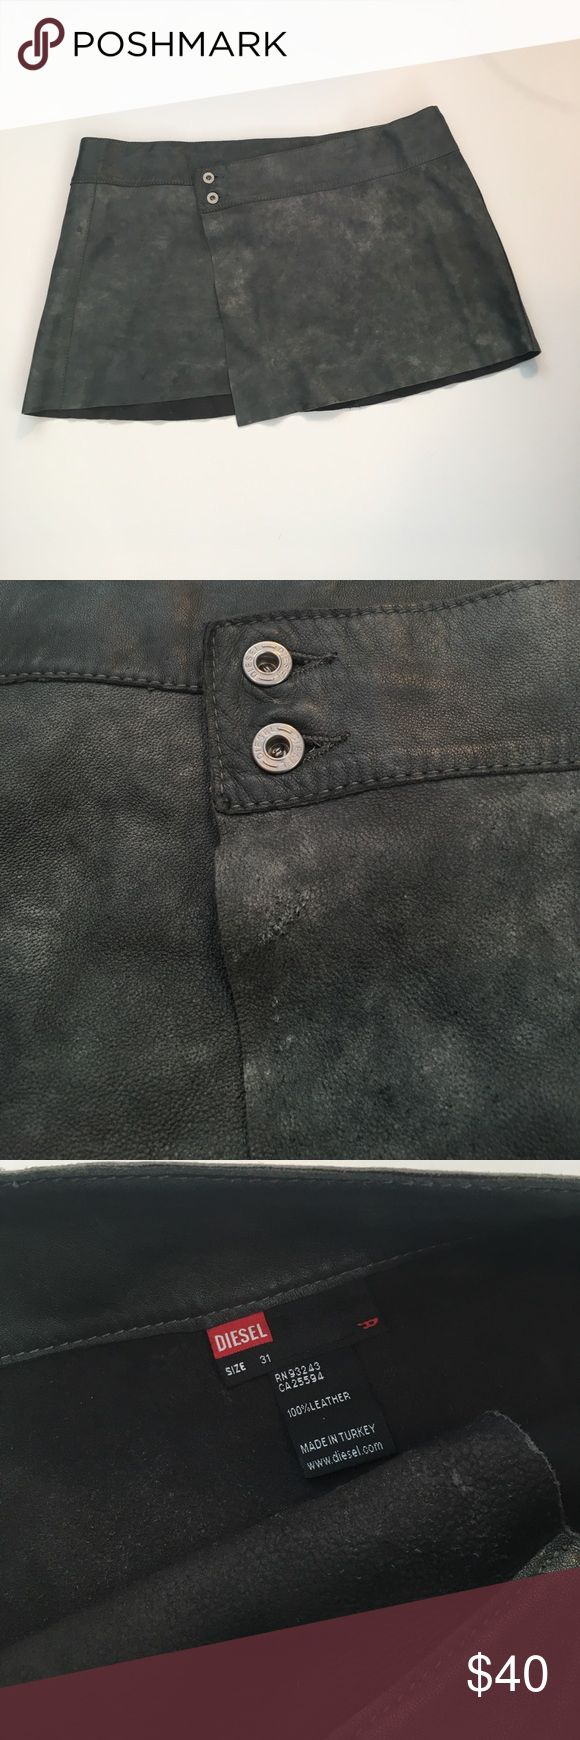 Diesel leather wrap mini skirt Good used condition. Gray beautiful leather perfect for winter for paring with leggings and boots. One small flaw depicted Size 31 Diesel Skirts Mini